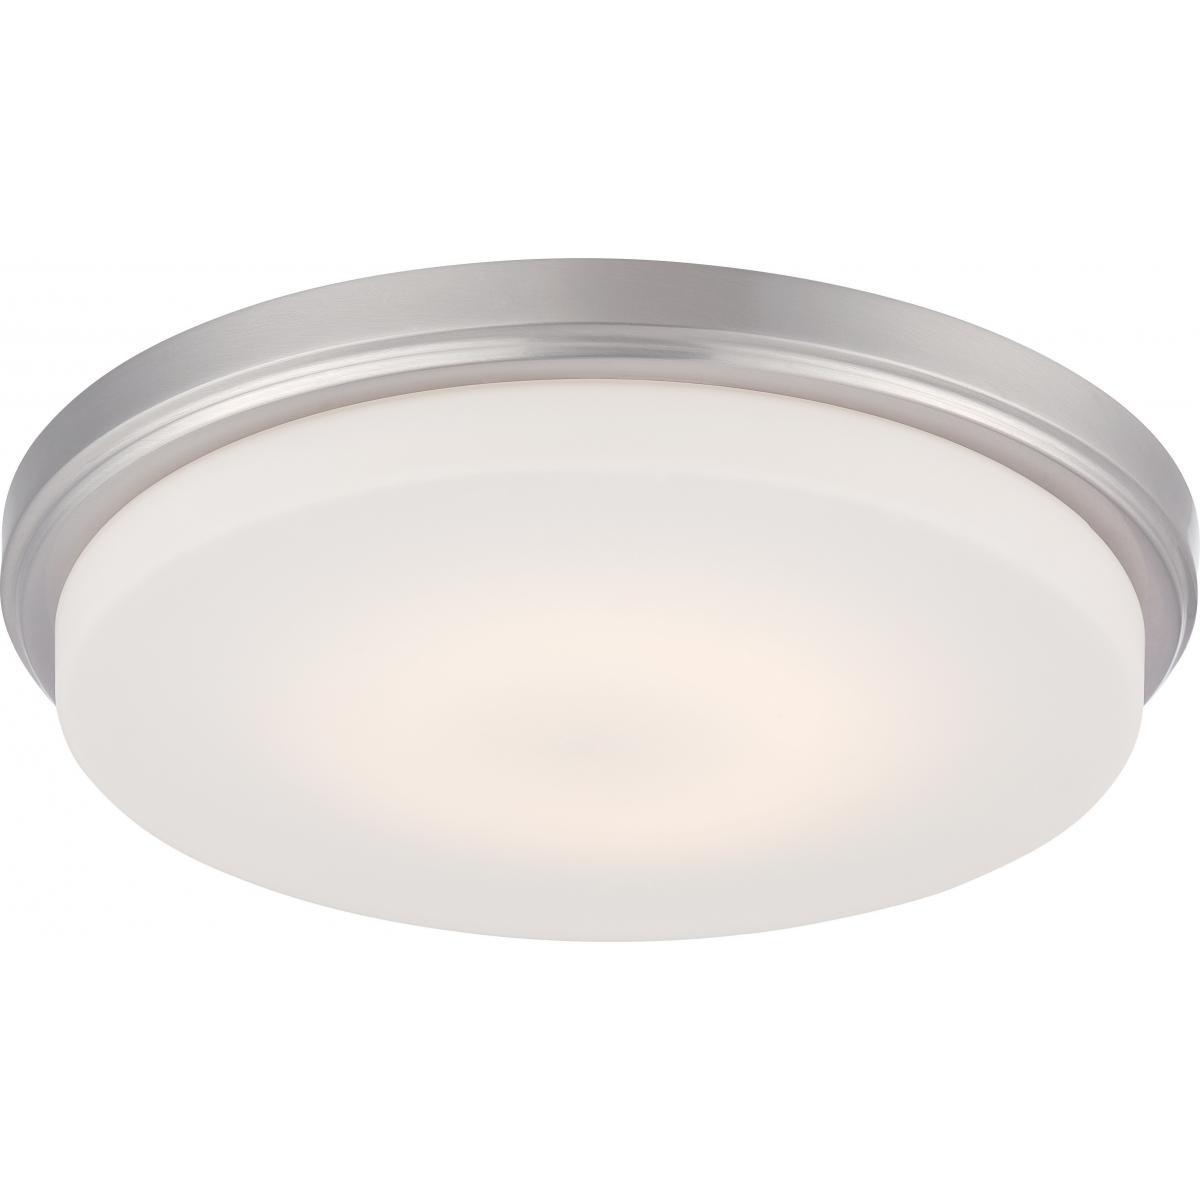 Dale LED Flush Fixture with Opal Frosted Glass Ceiling Nuvo Lighting